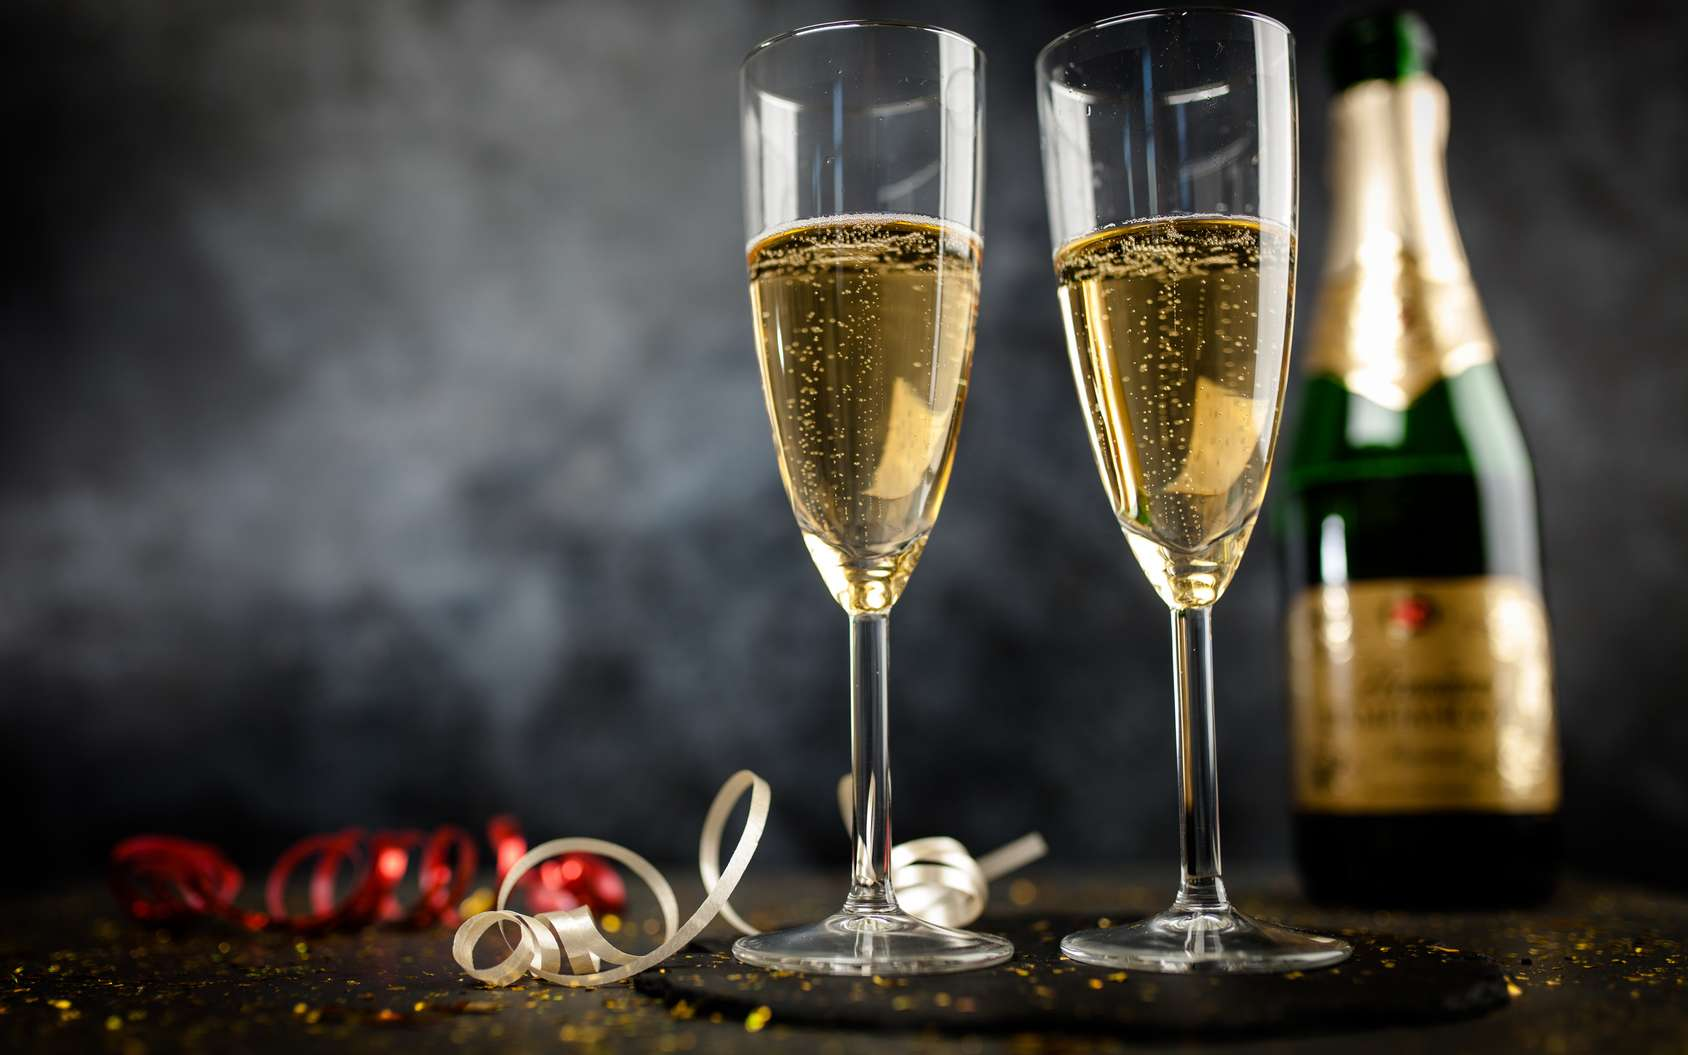 5eed5a82c6_117636_bouteille-champagne-flute